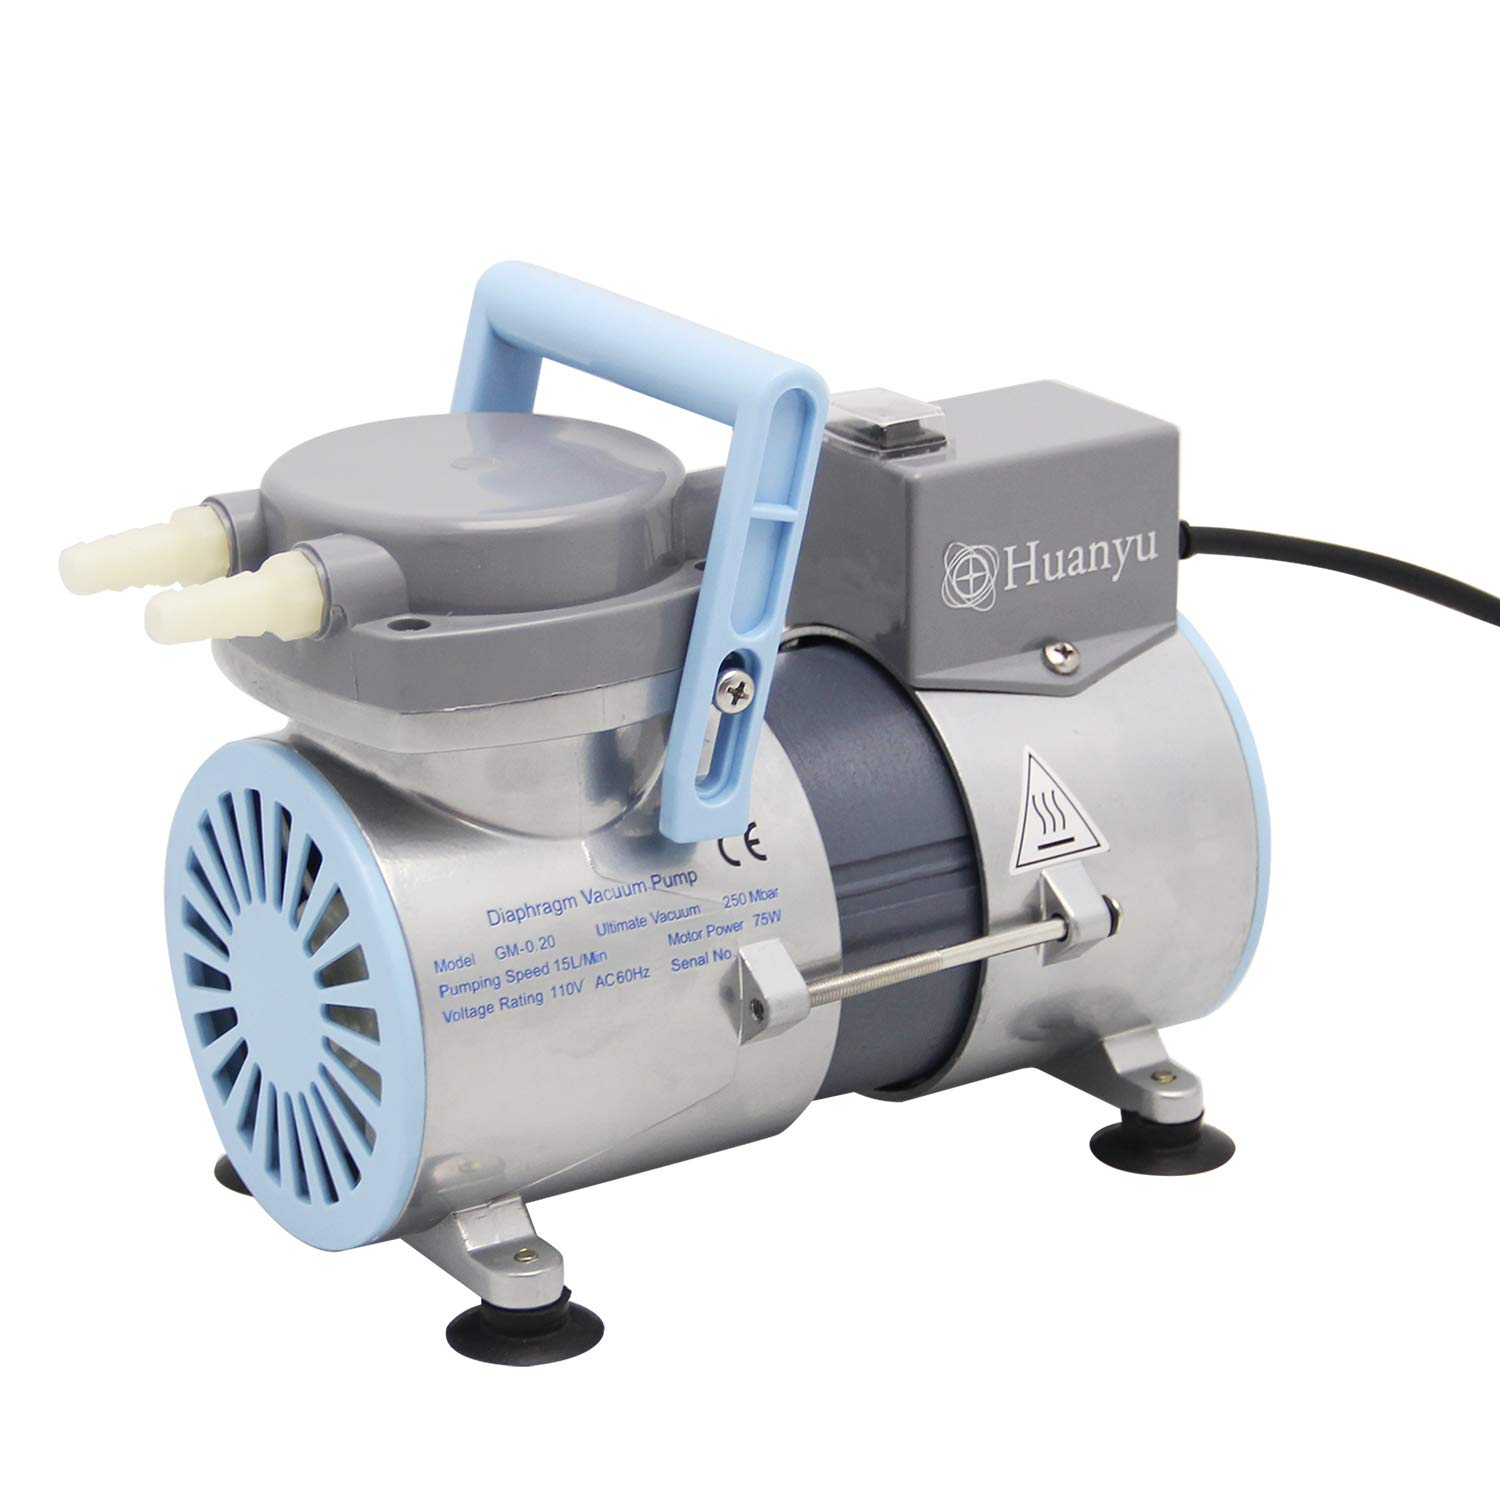 Huanyu Oilless Diaphragm Vacuum Pump Oil Free Anticorrosive Pump 12L/min Lab R&D for Filtration Extraction Apsorption 110V (Ordinary Type, GM-0.2(Single Pump))